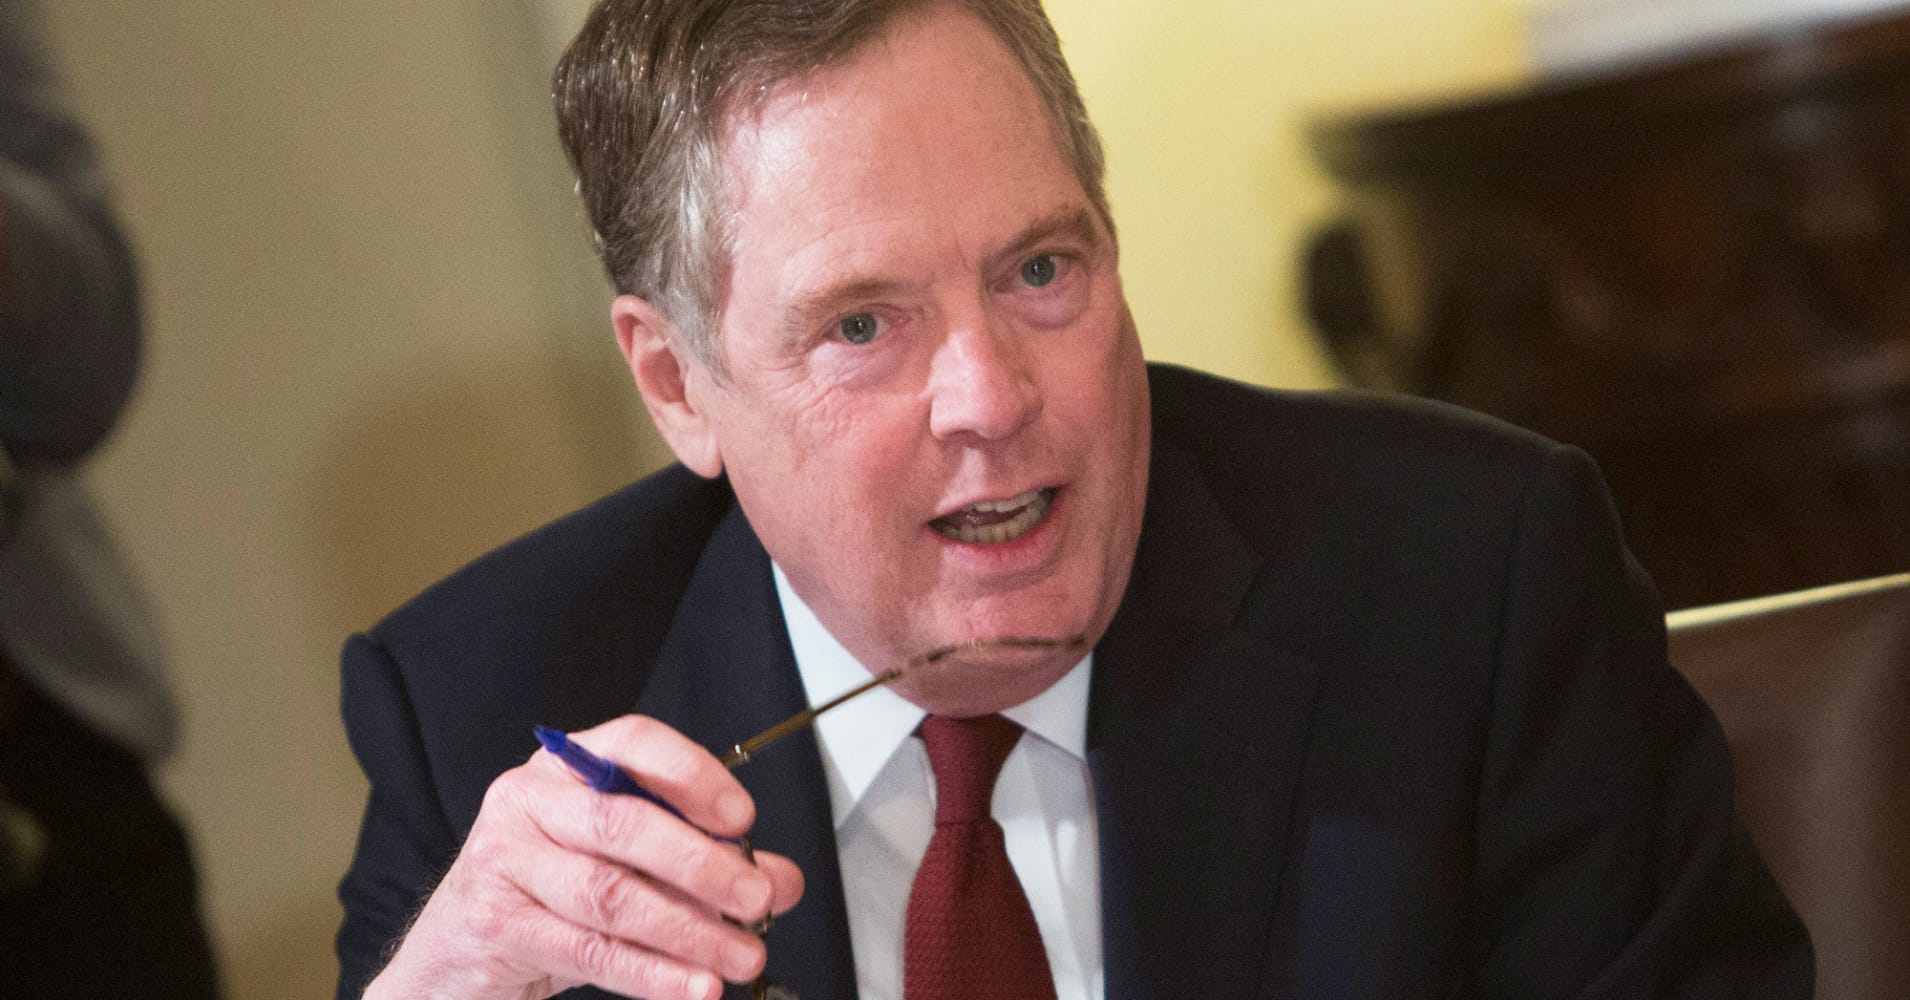 US Trade Rep. Lighthizer thinks more tariffs could be needed to get meaningful China concessions